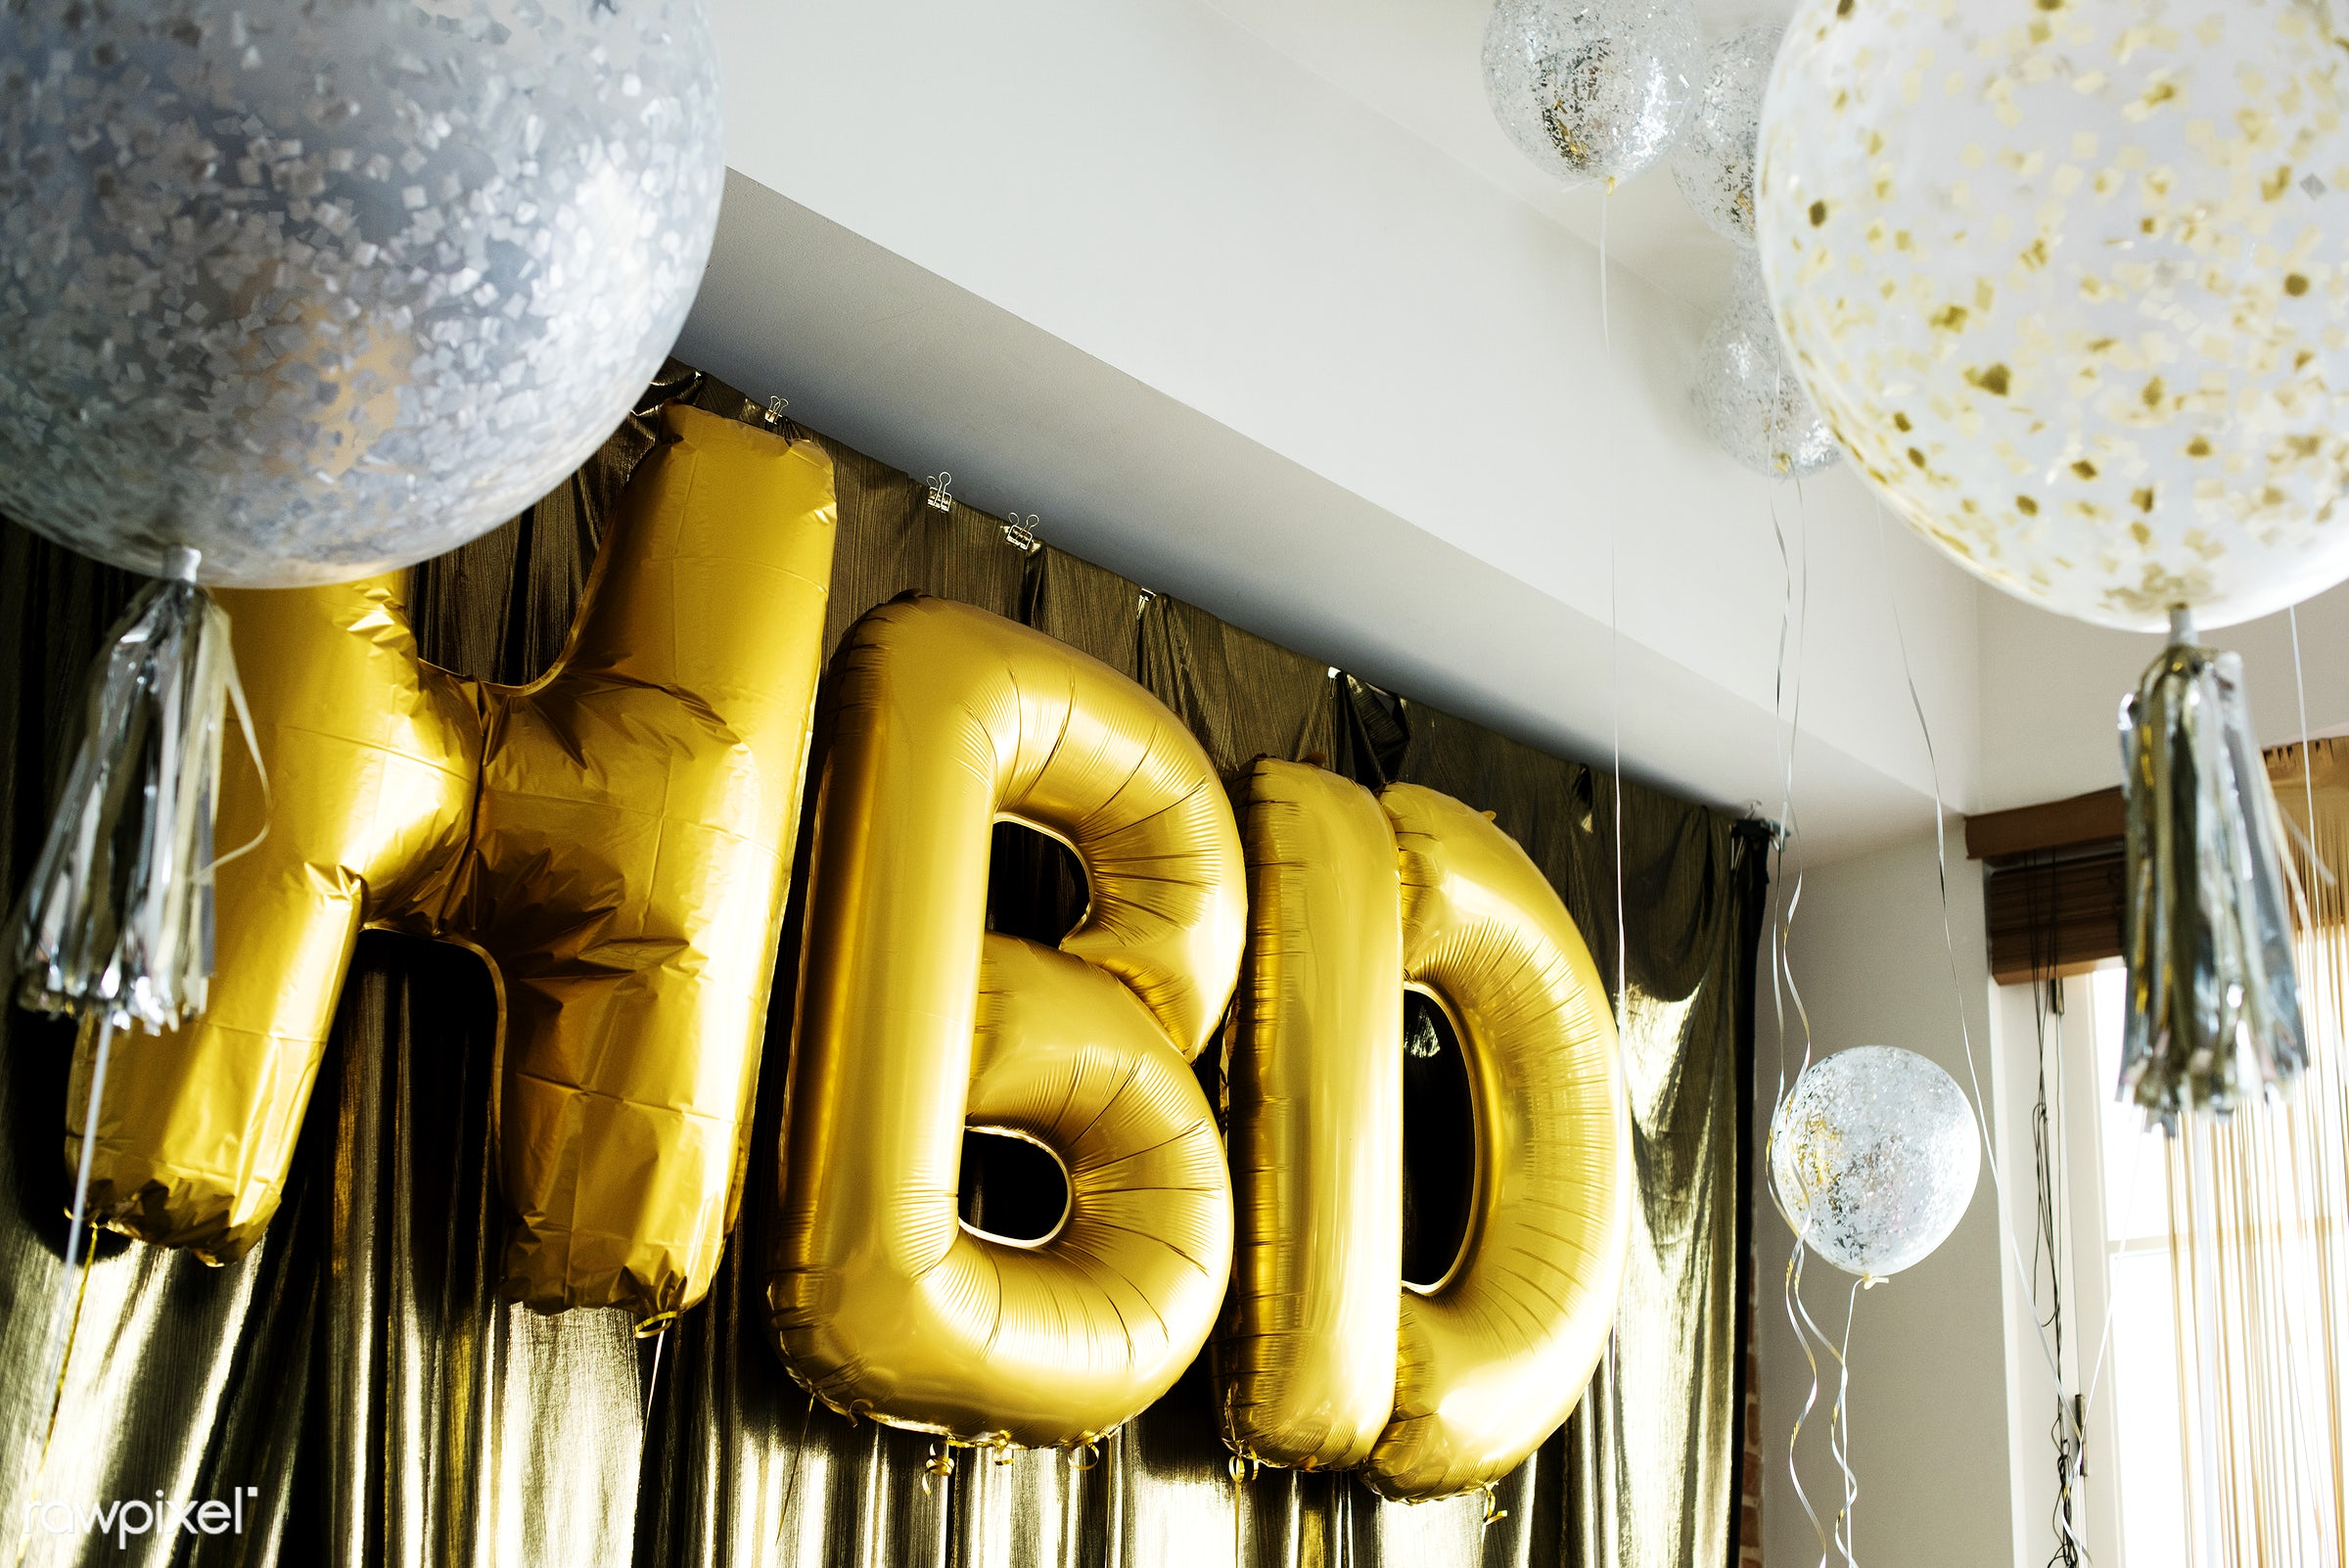 HBD balloons in a birthday party - birthday, 2018, balloons, celebrate, celebration, decorate, decoration, event, festive,...